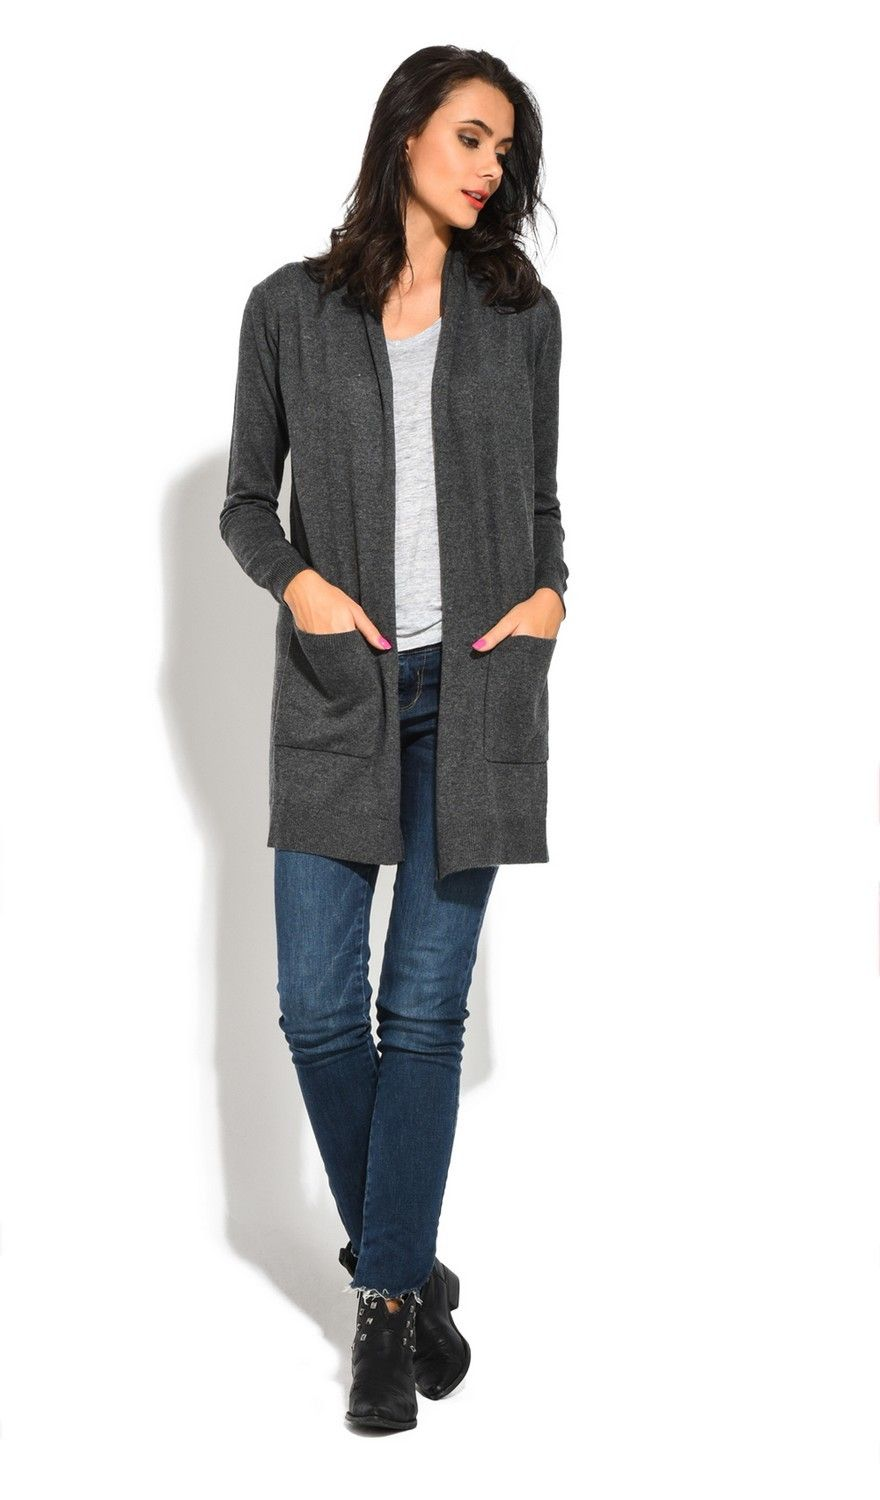 Assuili Longline Long Sleeve Cardigan with Pockets in Grey